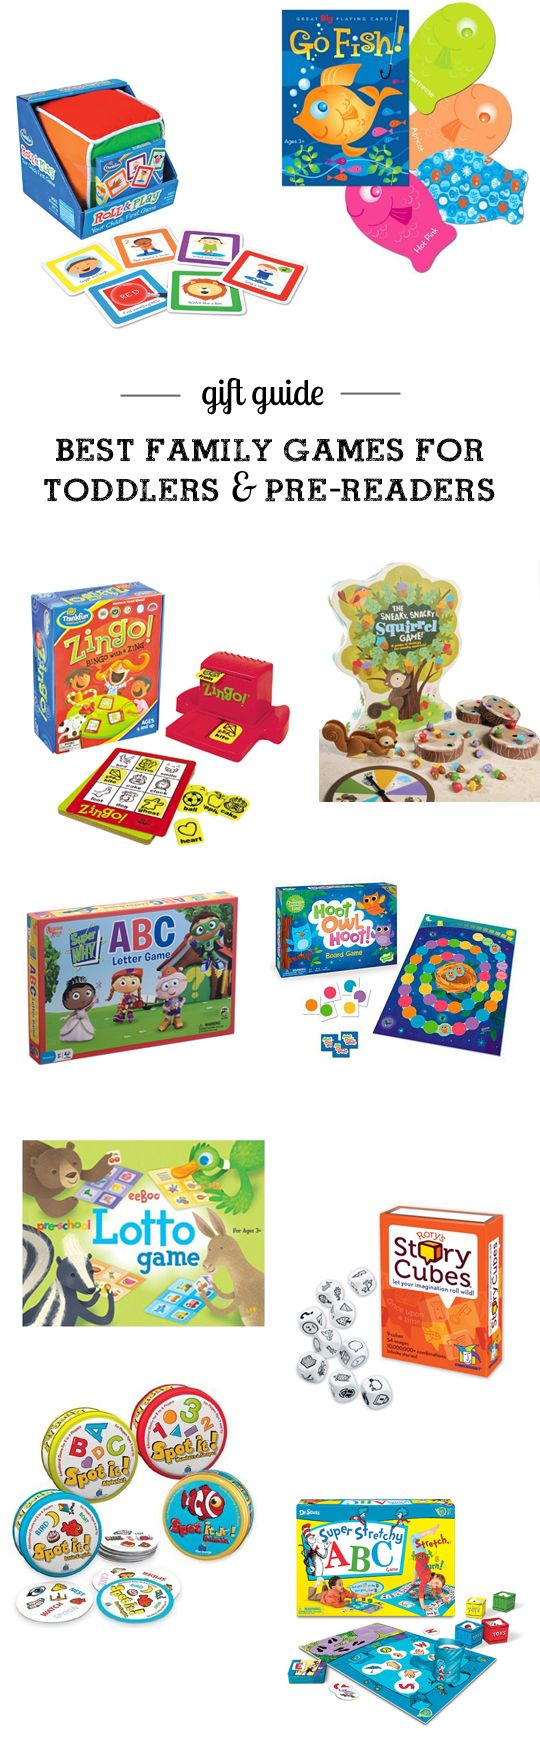 gift guide best games to start a family game night with